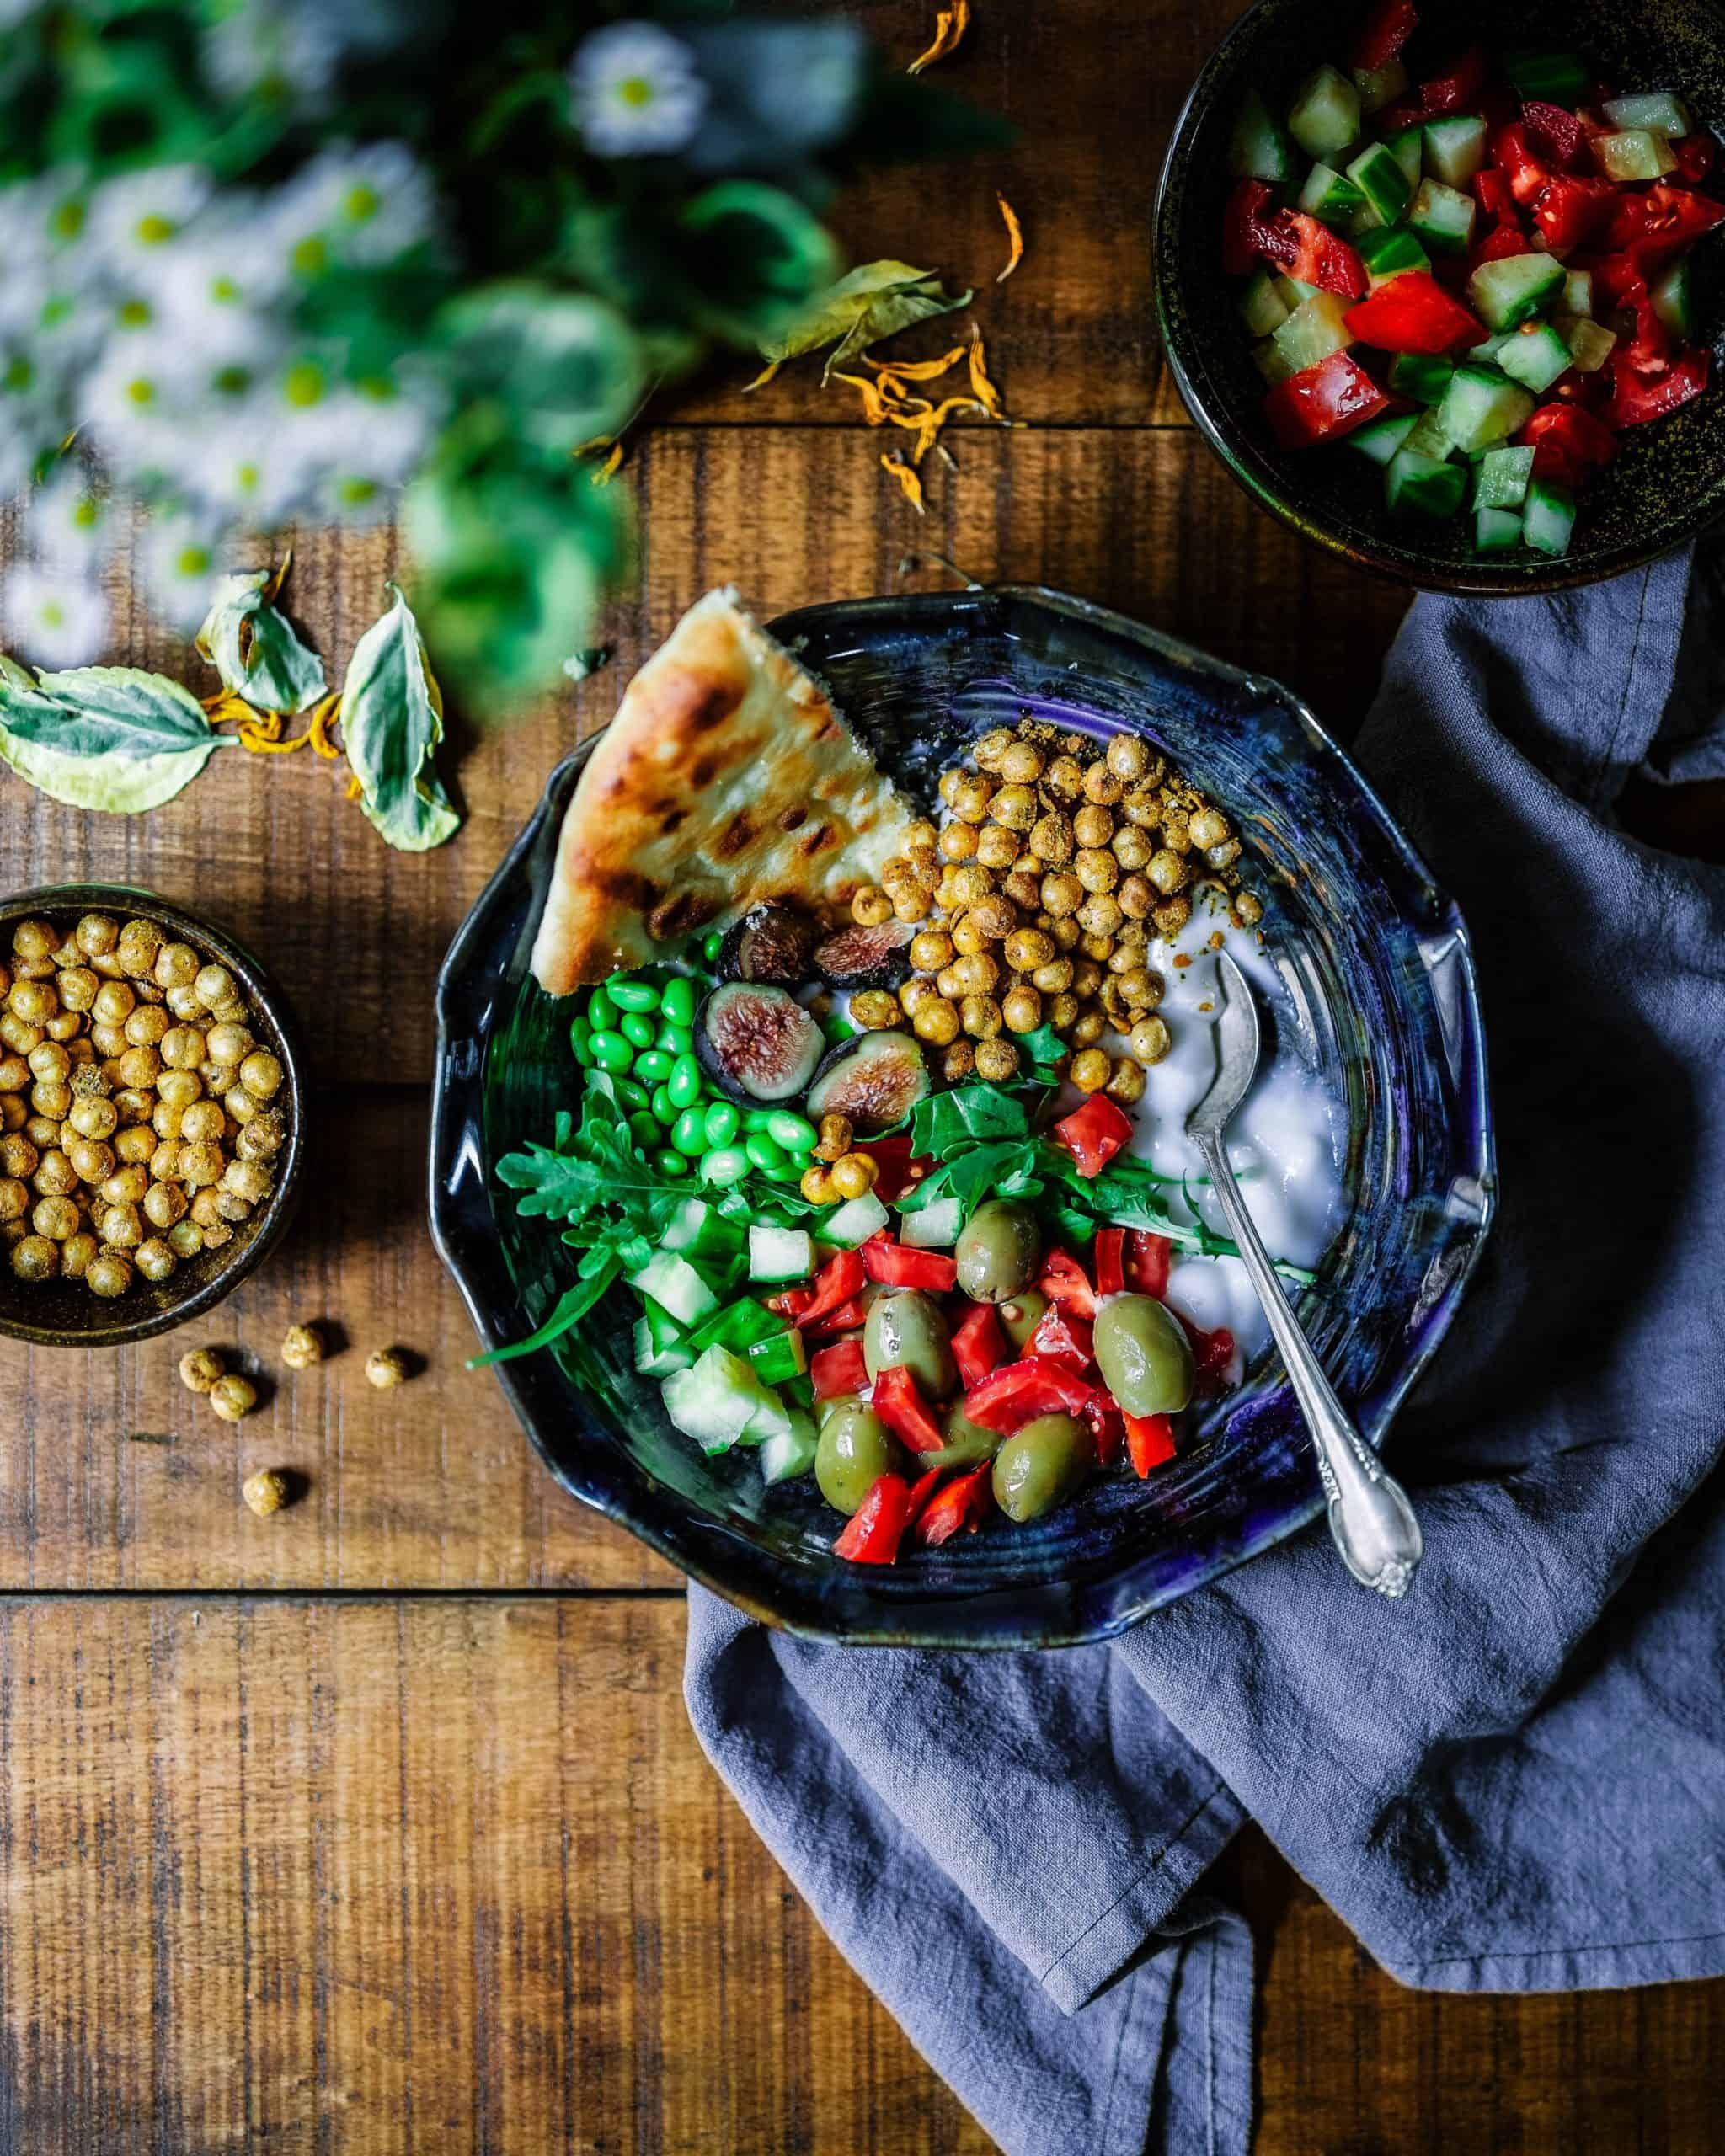 8 Vegan Meals For the Whole Family